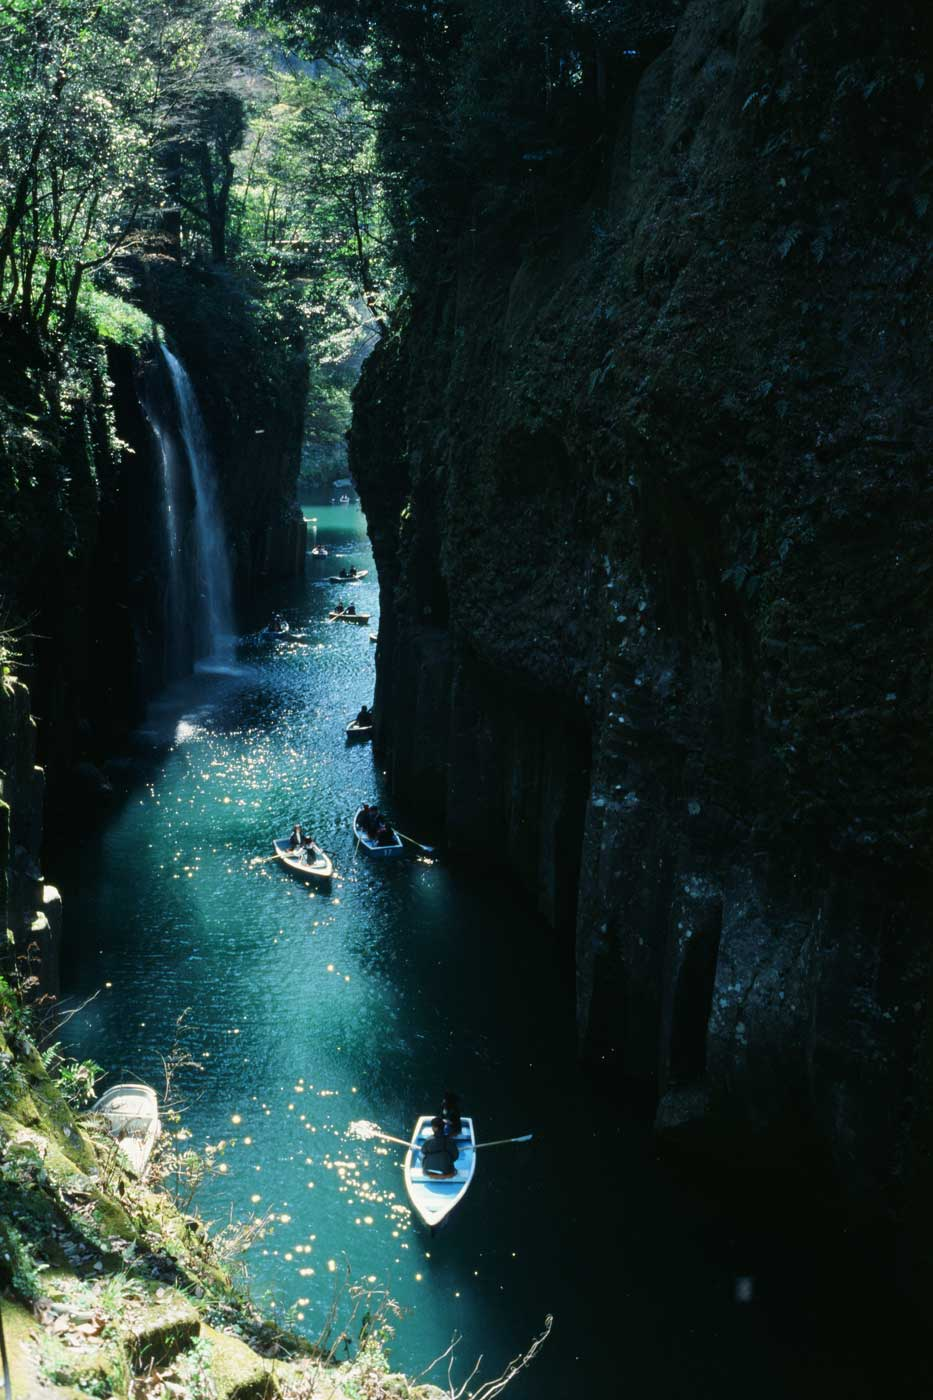 Leica-summicron-35mm-f2-8element-8-element-v1-version1-lens-review-blog-sharing-thoughts-compare-7element-gear-how-performance-fukuoka-takachiho-gorge-ektachrome-kodak-e100